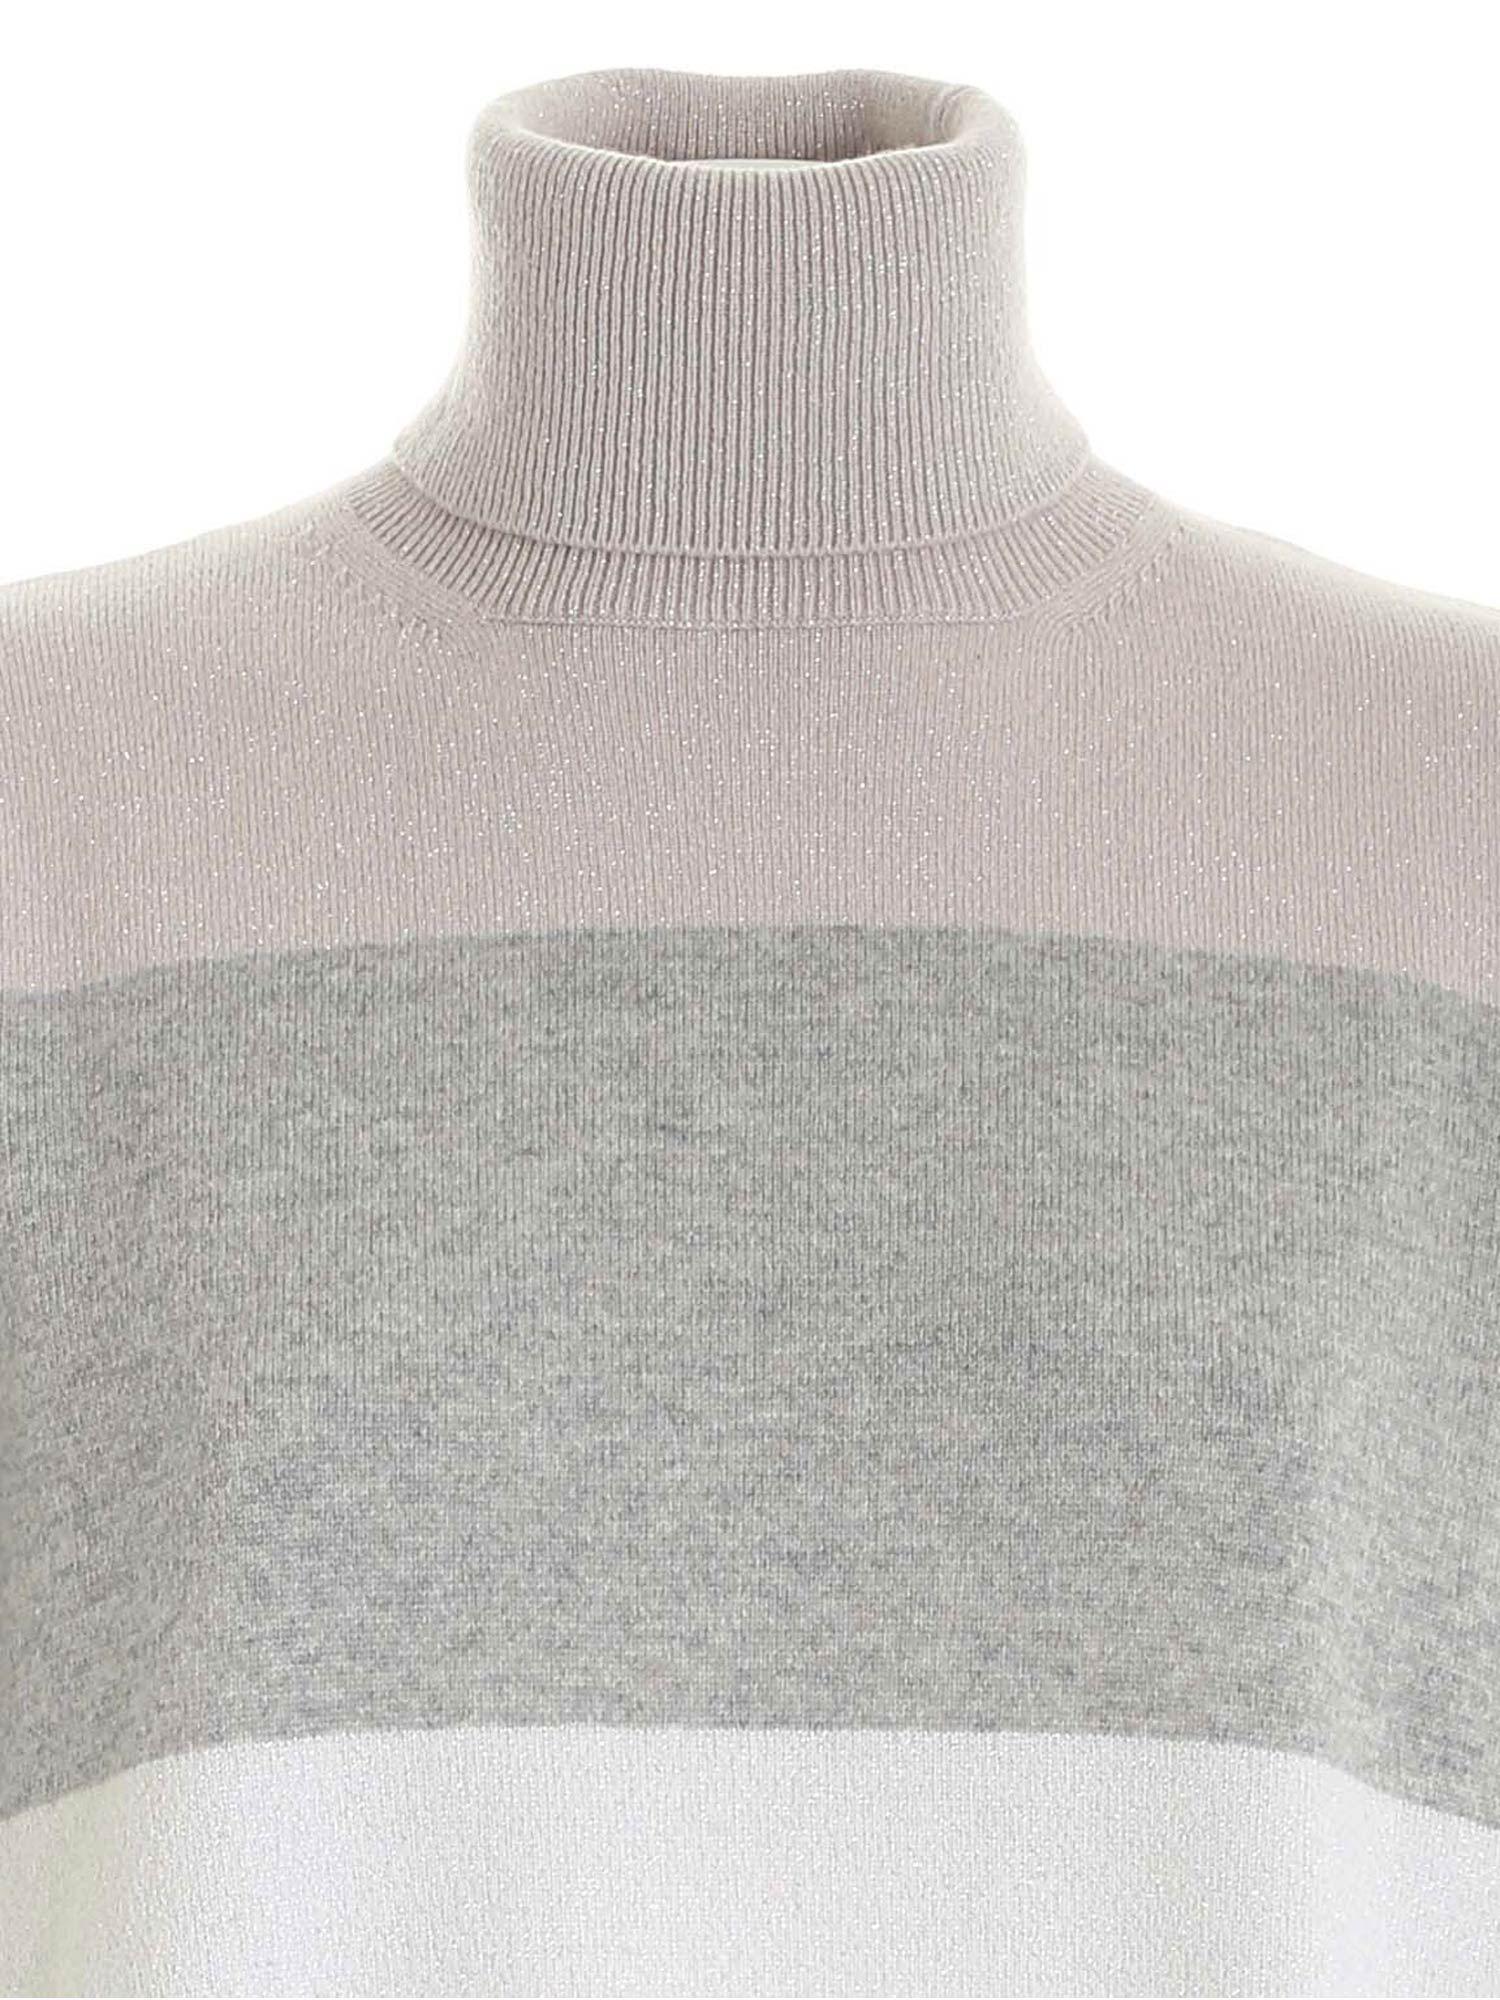 LAMÉ DETAILS TURTLENECK IN GREY PAOLO FIORILLO CAPRI | 10000016 | 15310500029